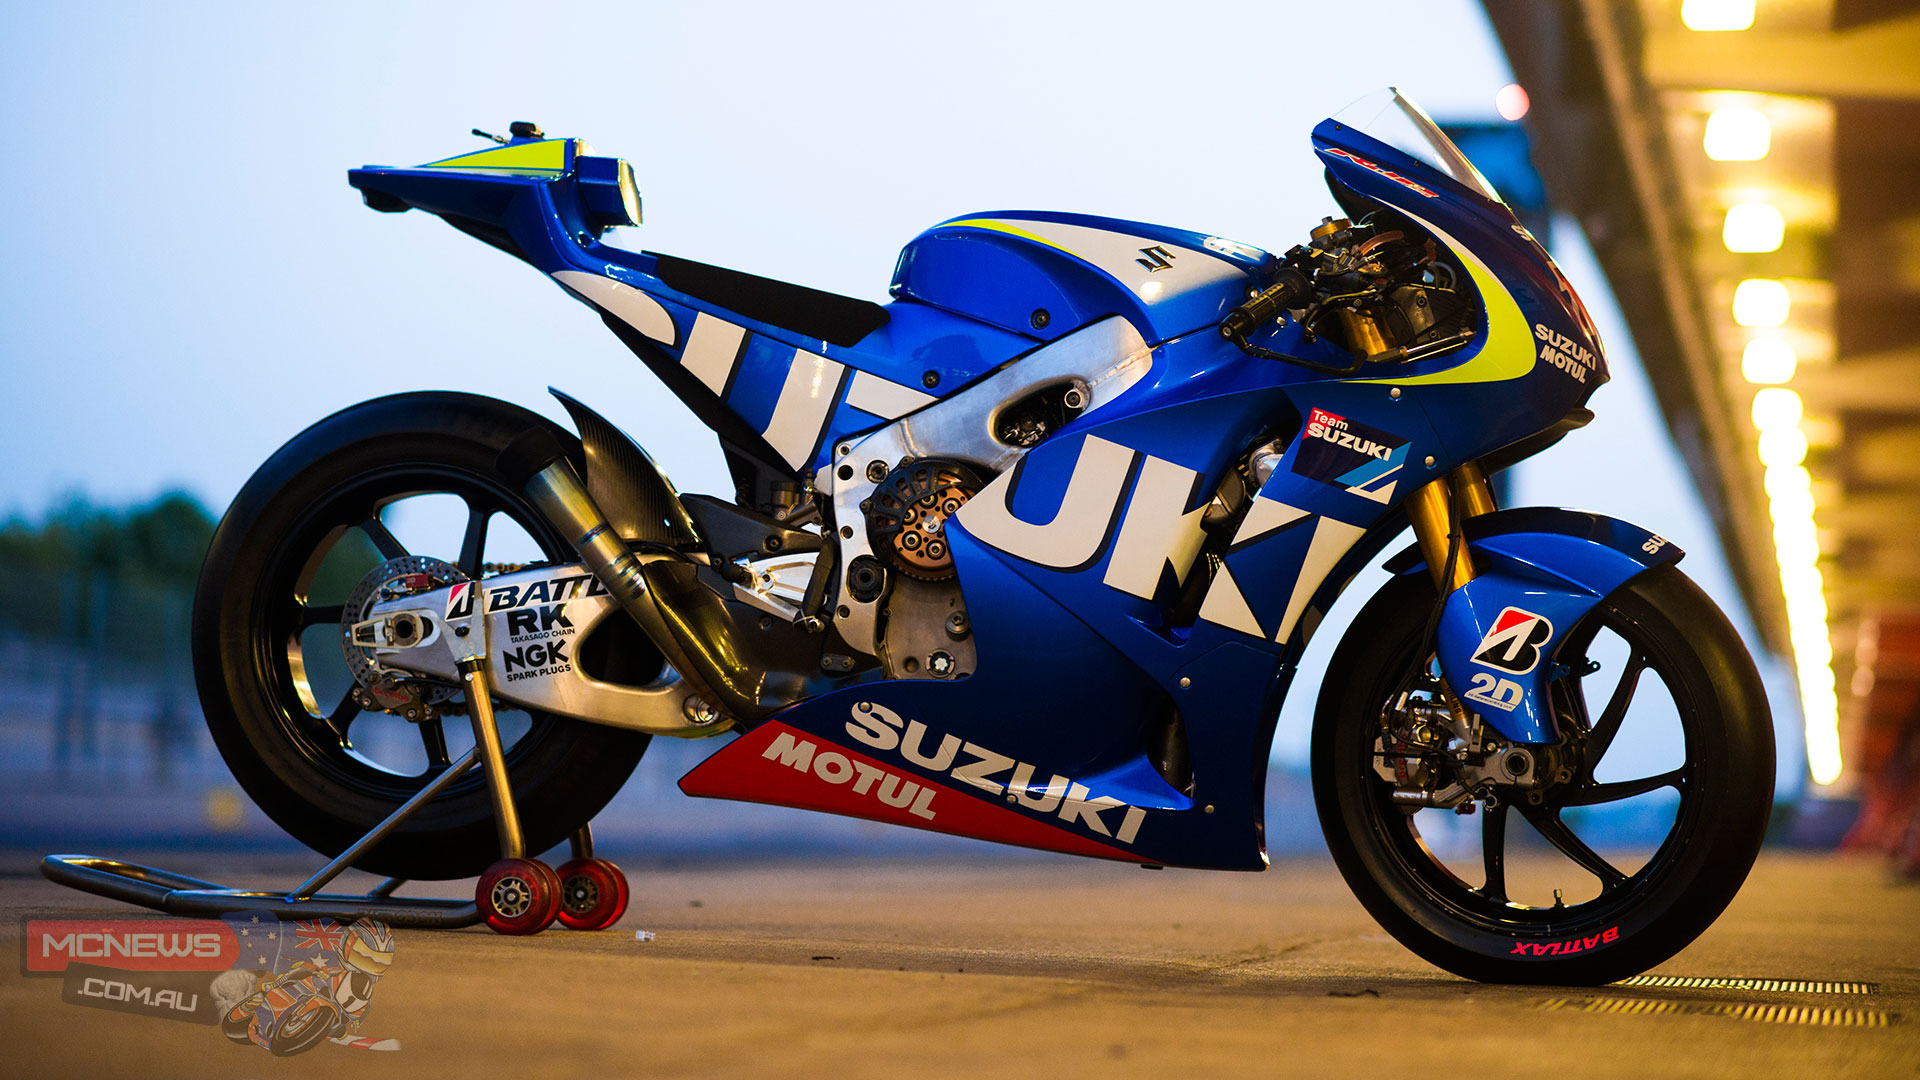 Suzuki MotoGP Test Machine 2013